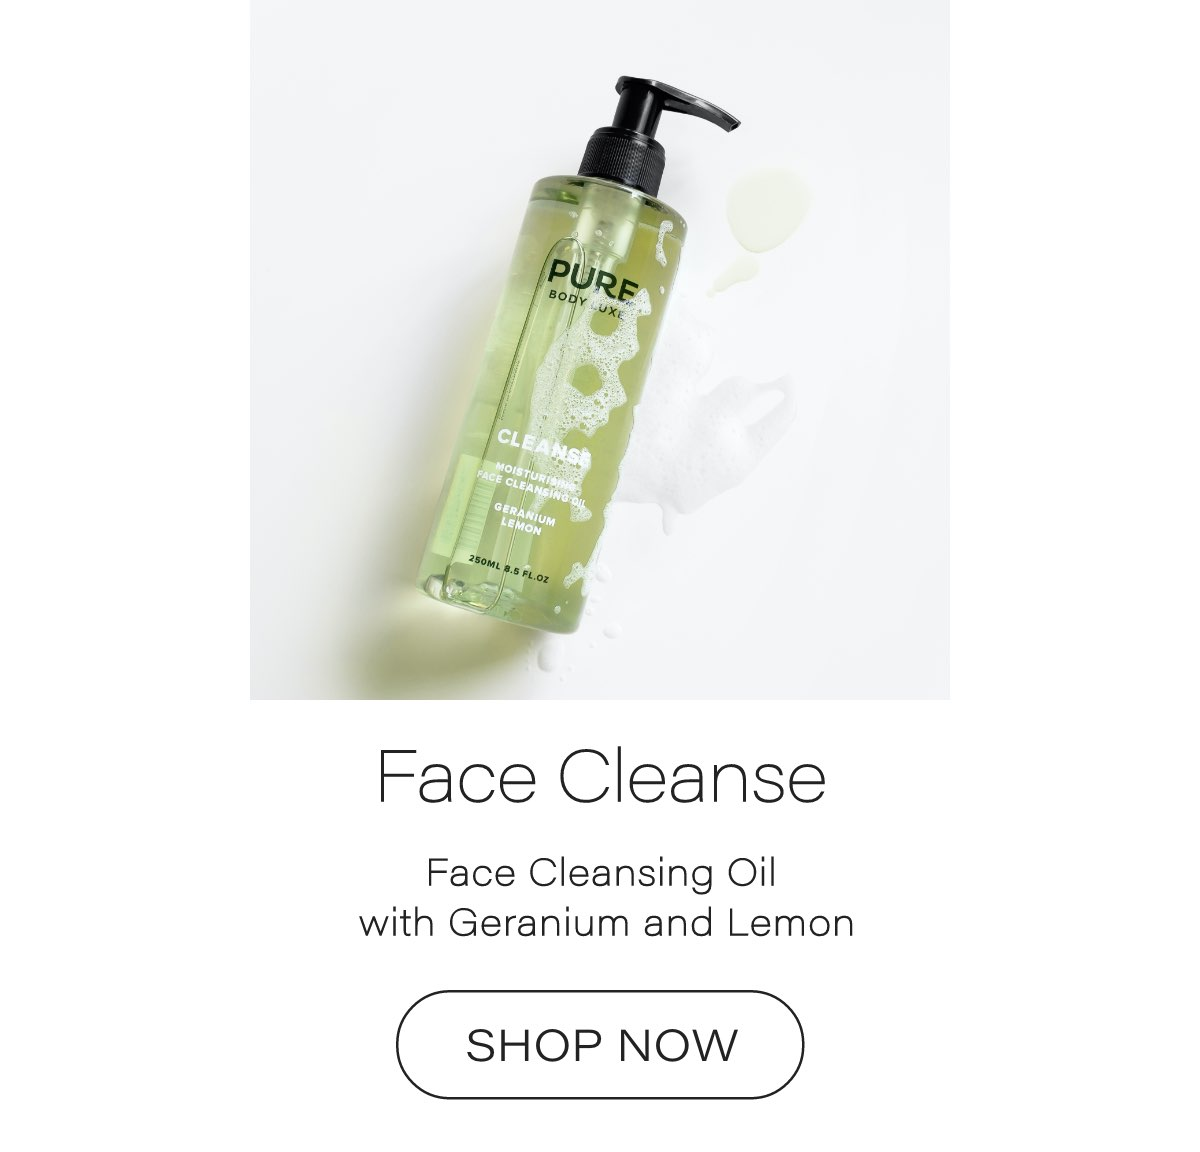 Pure Body Luxe Face Cleansing Oil